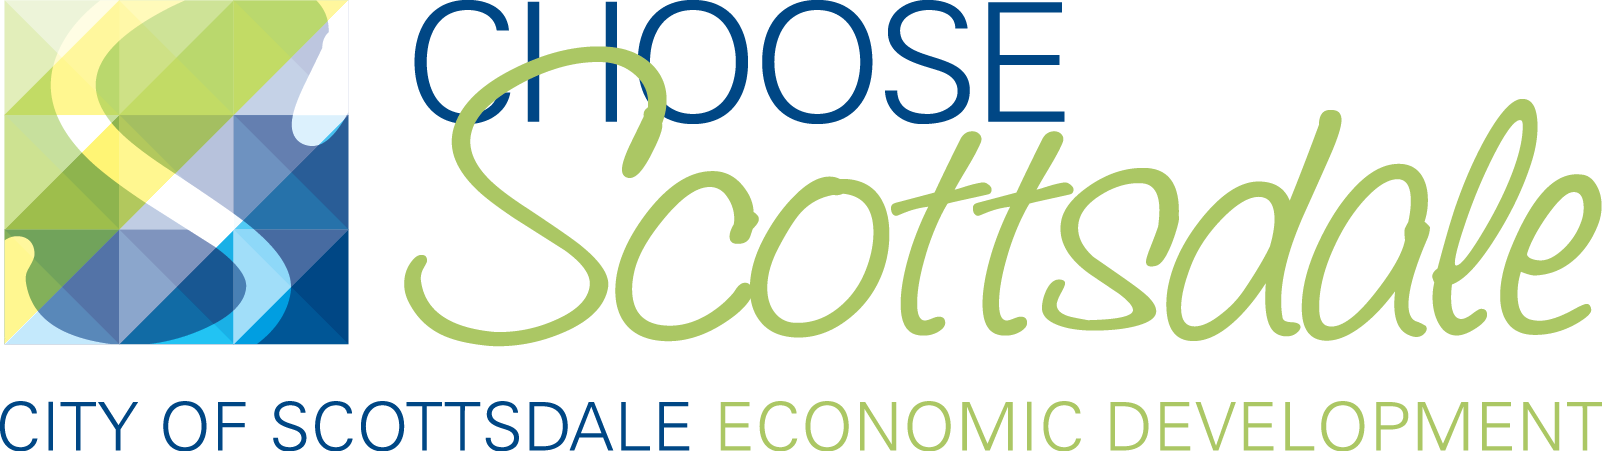 Choose Scottsdale site logo